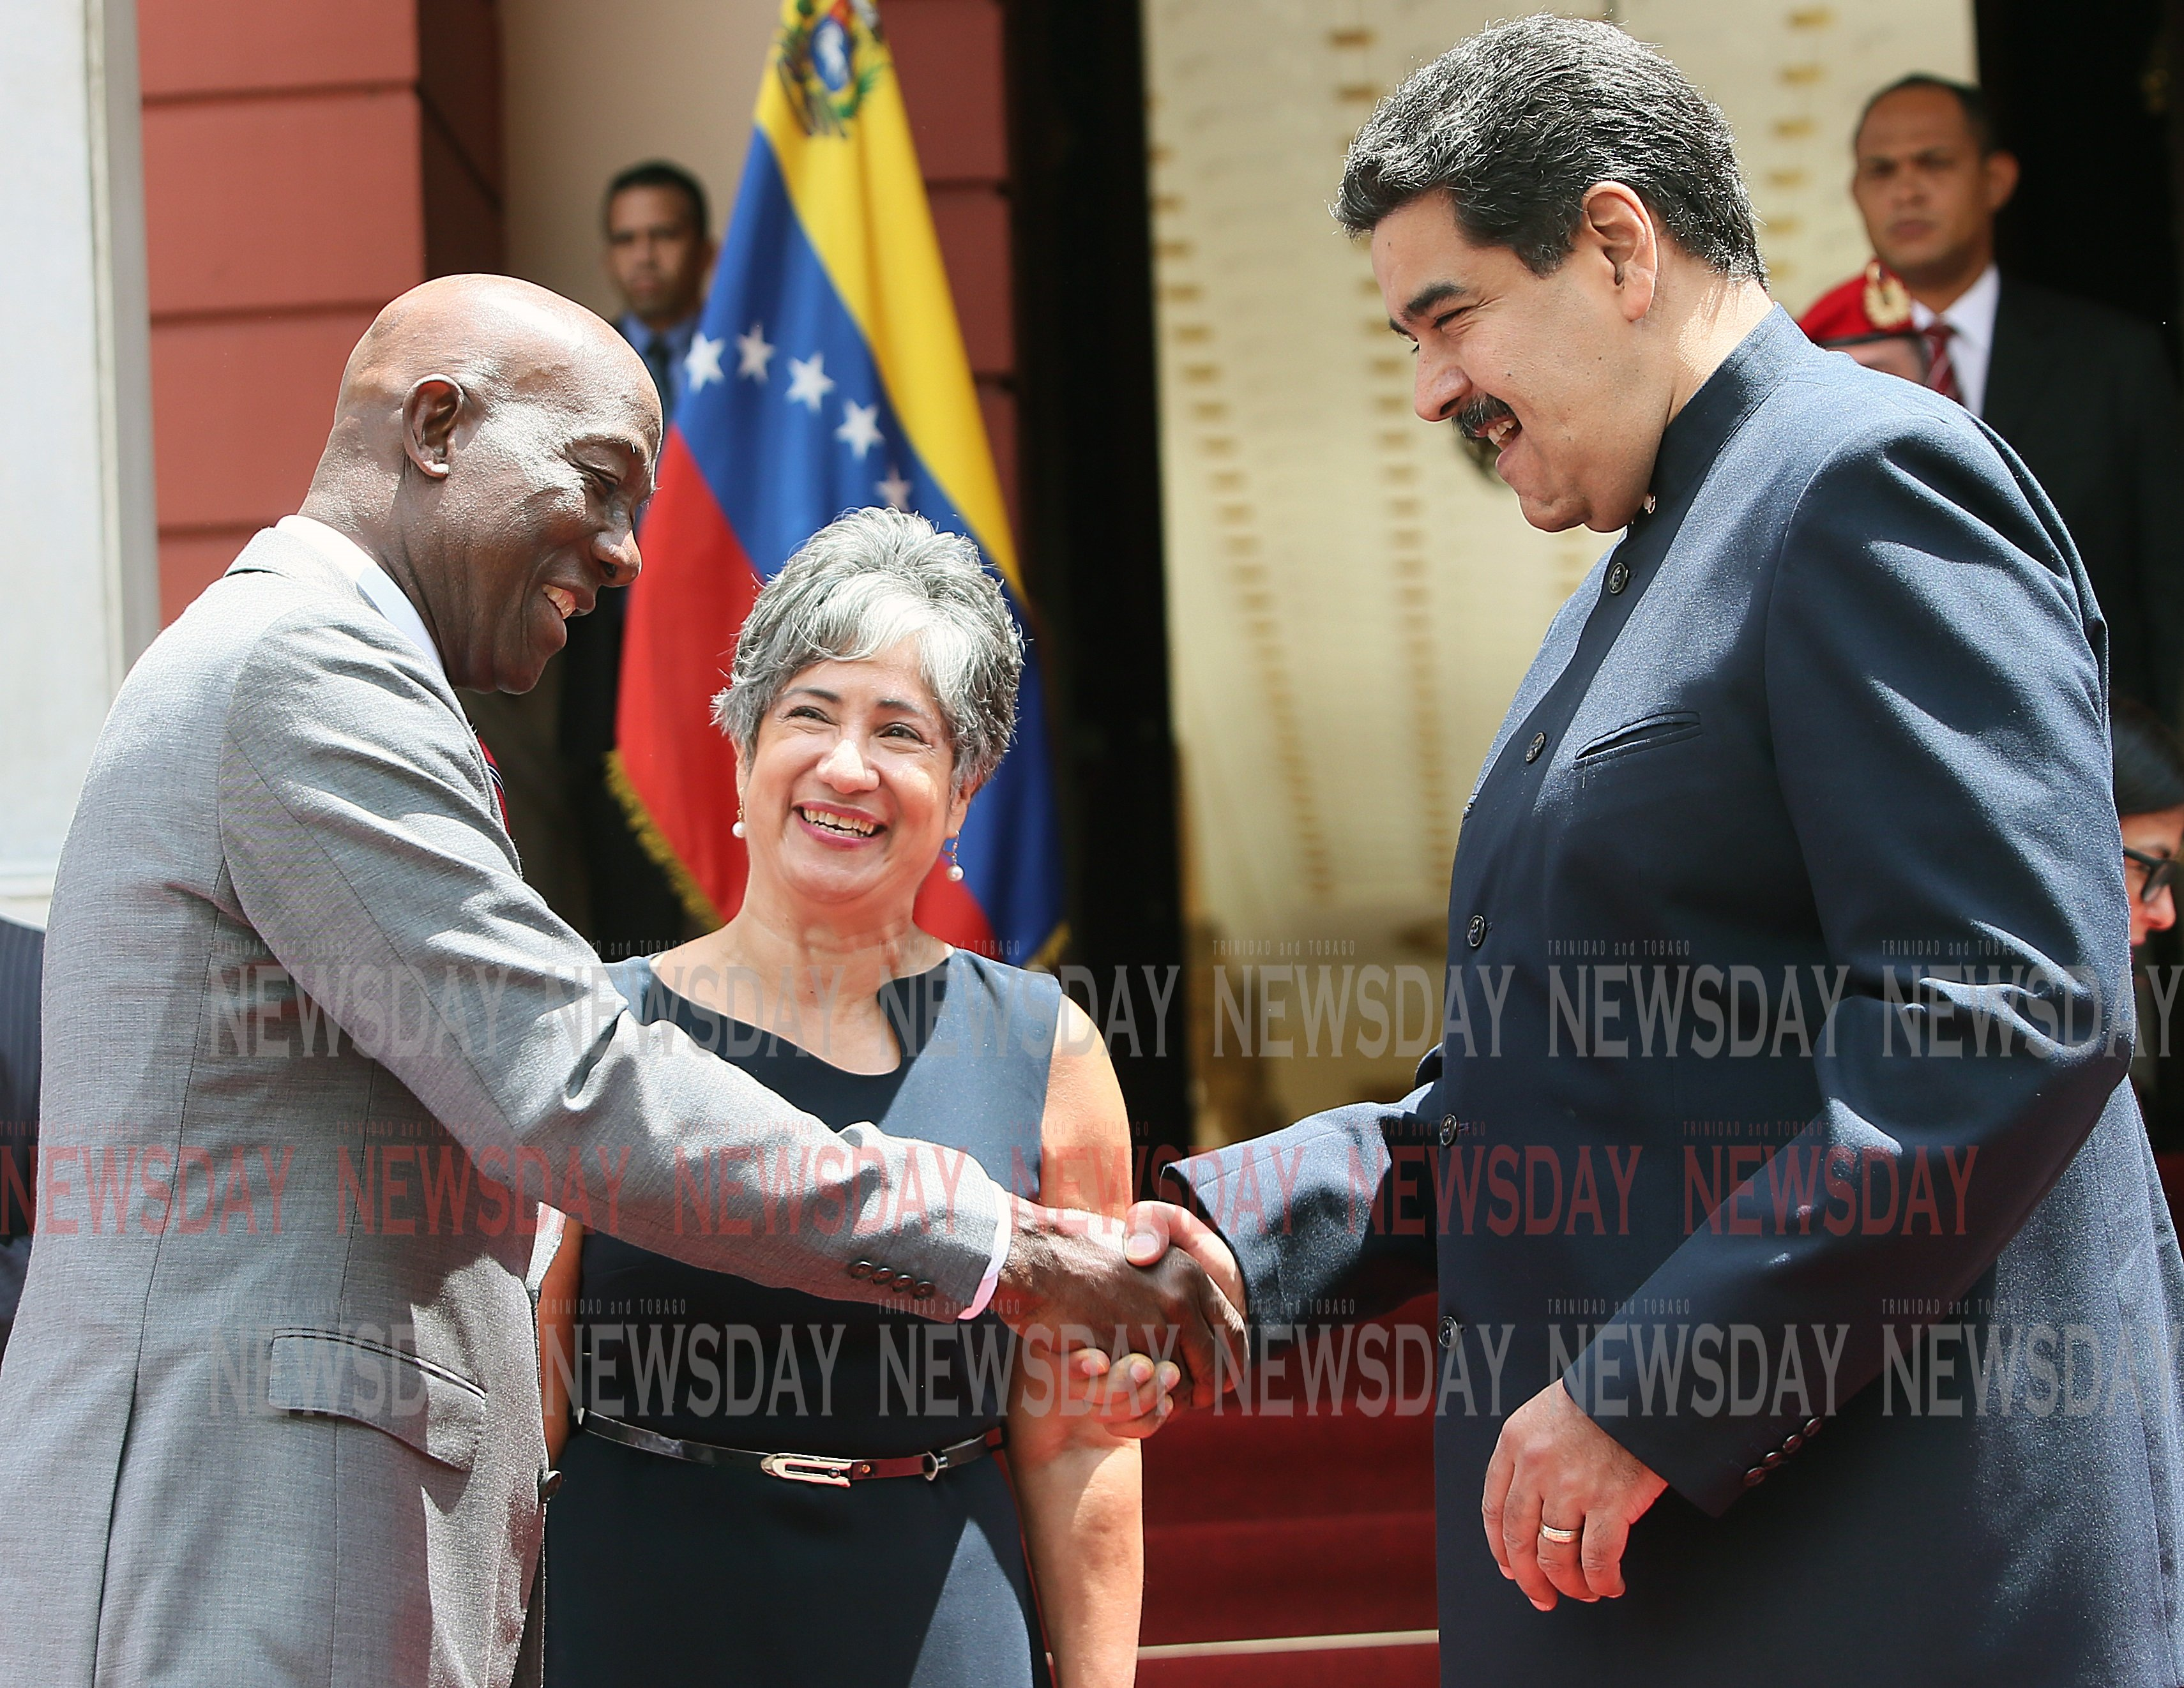 File photo: Venezuela's President Nicolas Maduro happily welcomes Prime Minister Dr Keith Rowley to the Miraflores presidential palace in Caracas where the two leaders sealed a deal for TT to process natural gas in the Dragon field. PHOTO BY AZLAN MOHAMMED